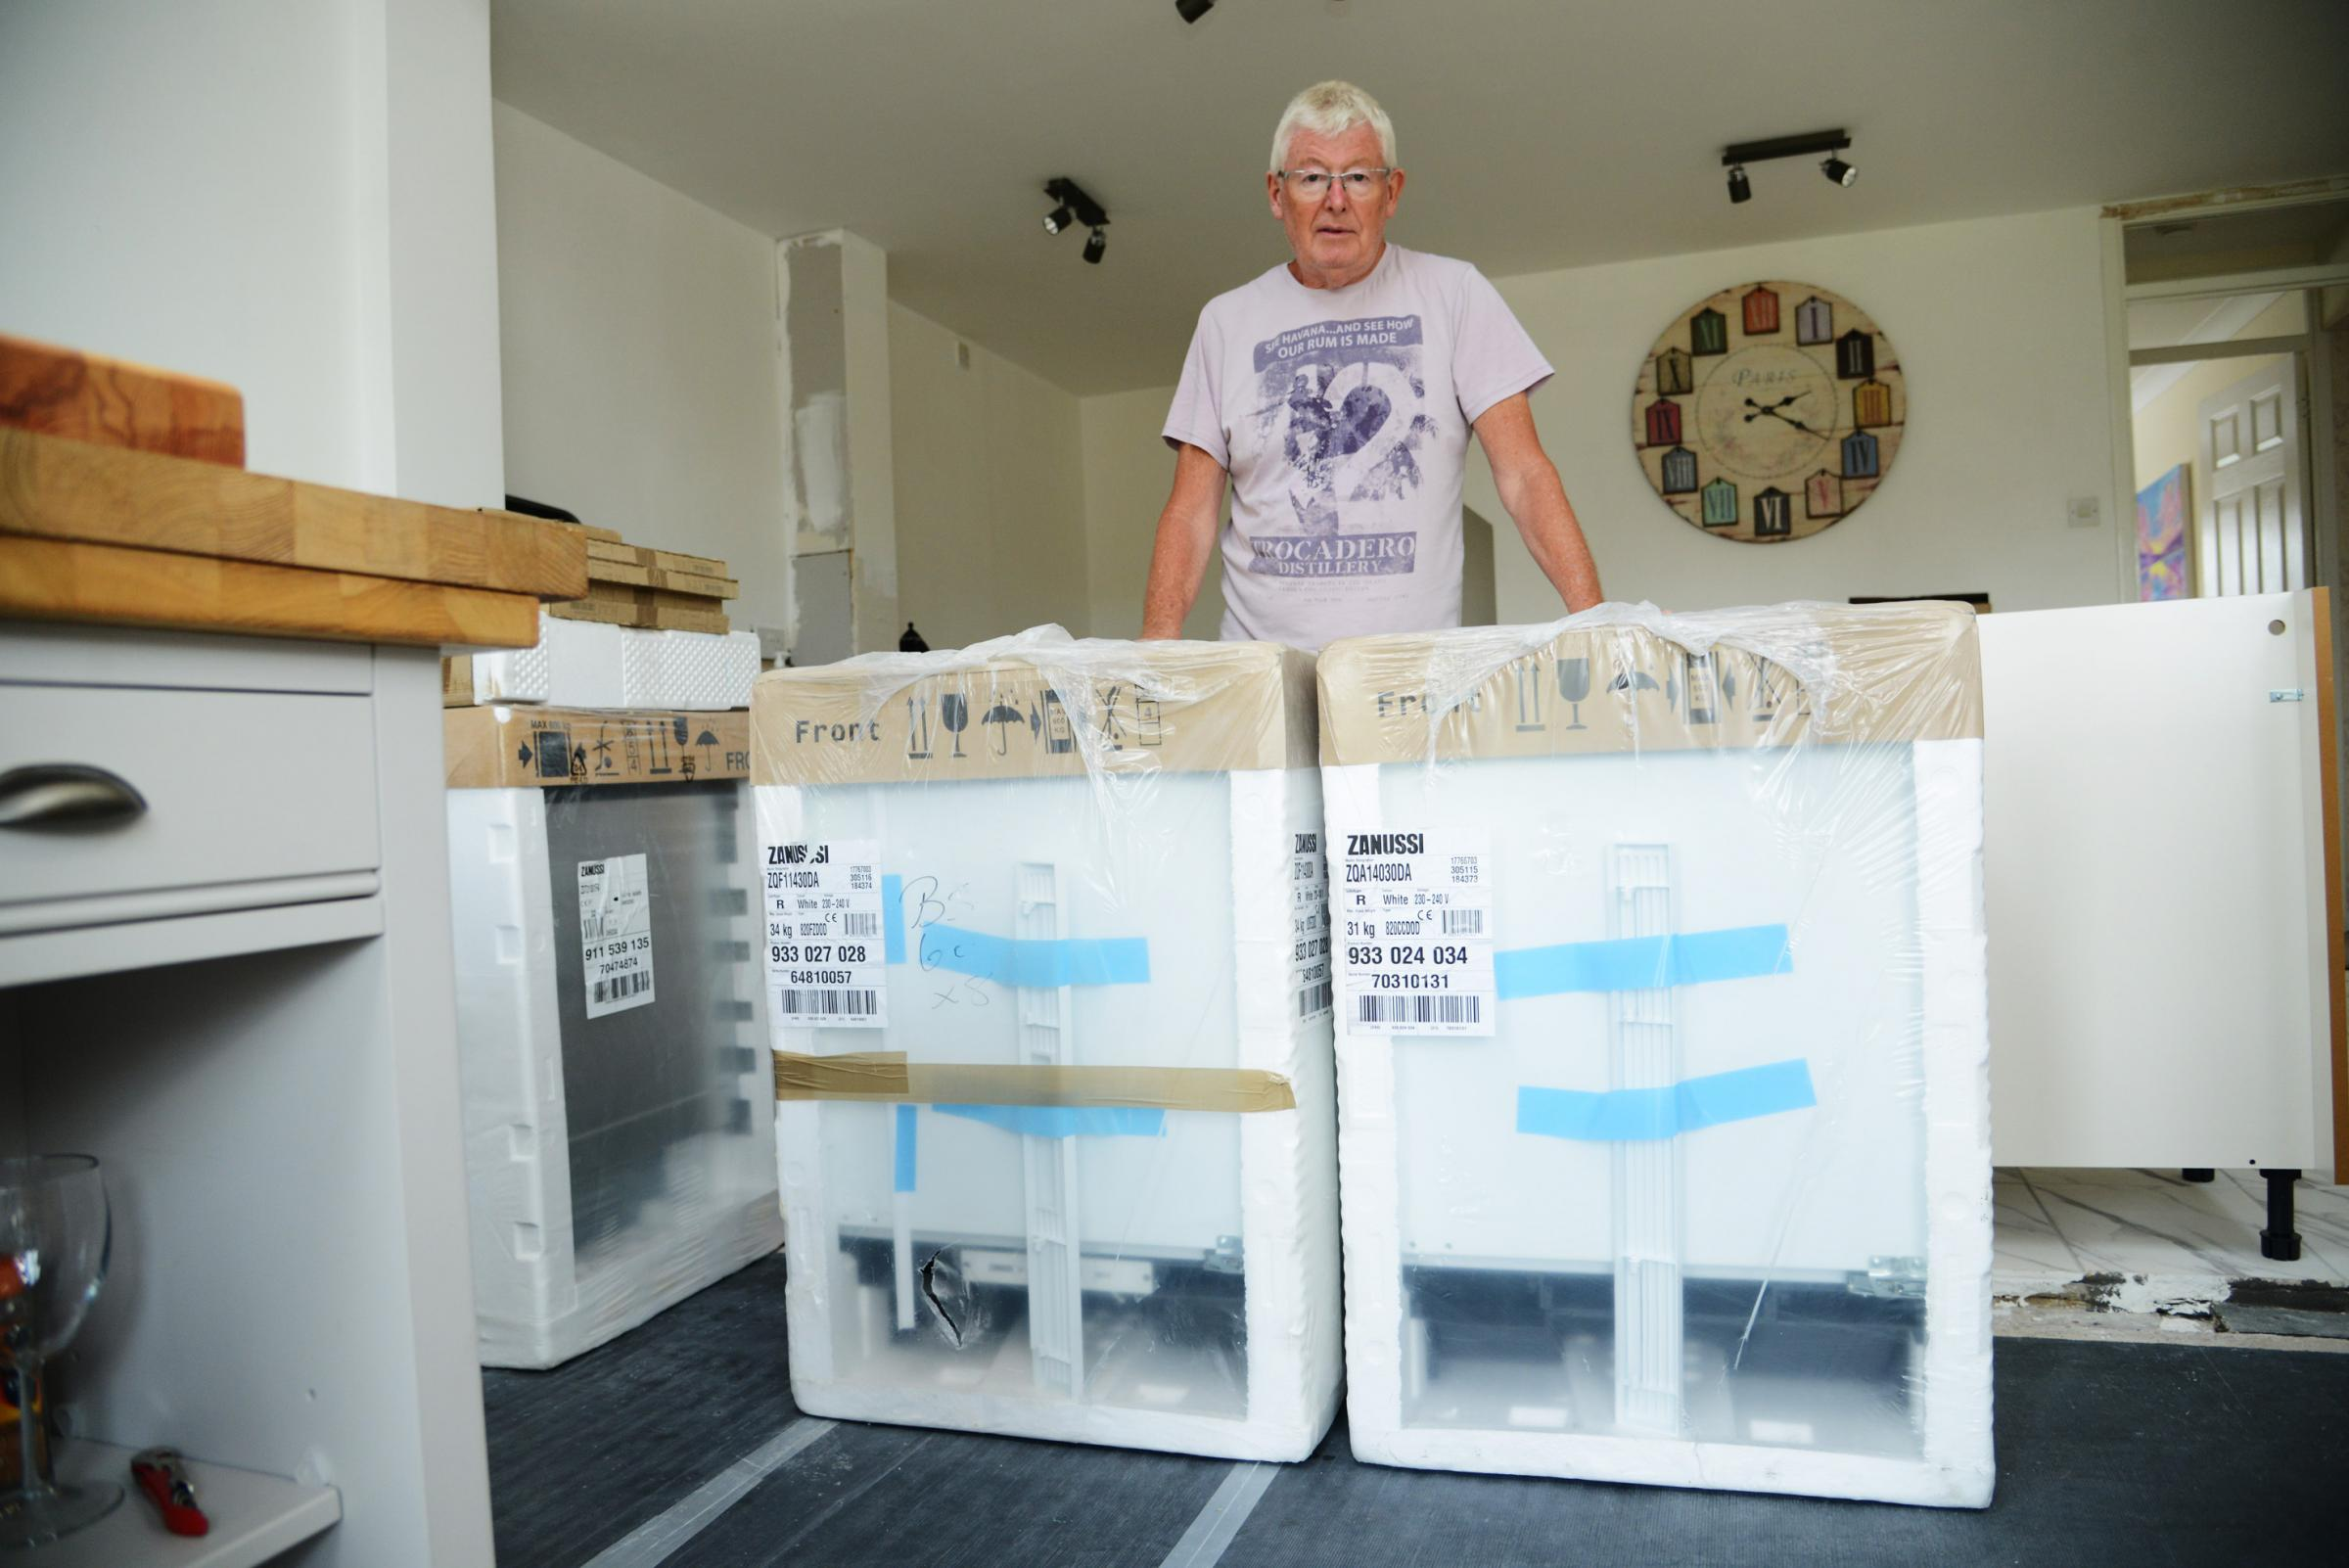 James Moore believes he was sold a dangerous fridge and freezer. Picture: Thomas Kelsey.